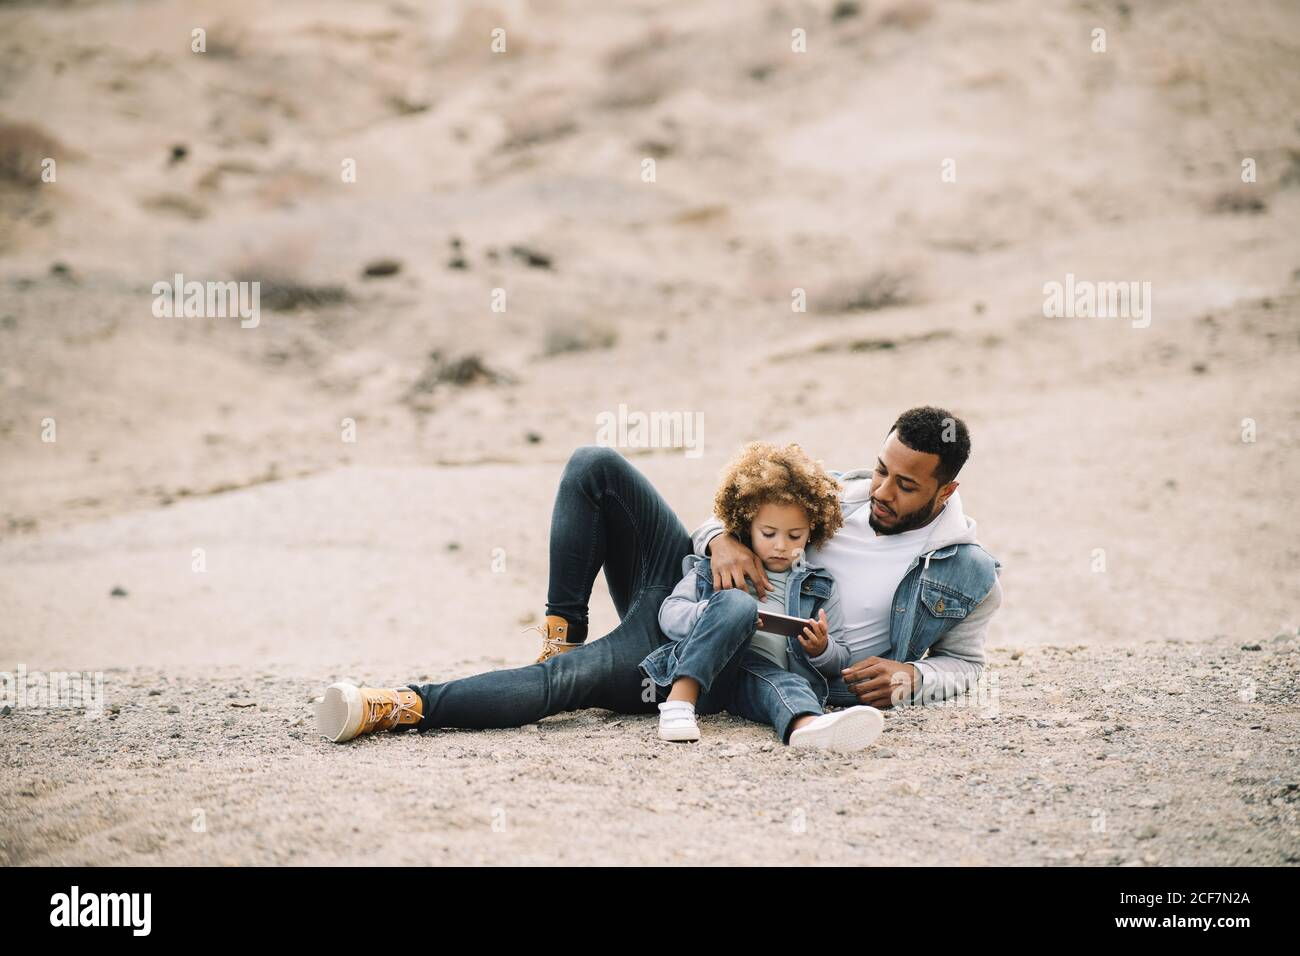 African American bearded casual man lying on sandy ground leaning on elbow and bending leg at knee looking at curly ethnic toddler in denim clothes sitting beside with mobile phone Stock Photo